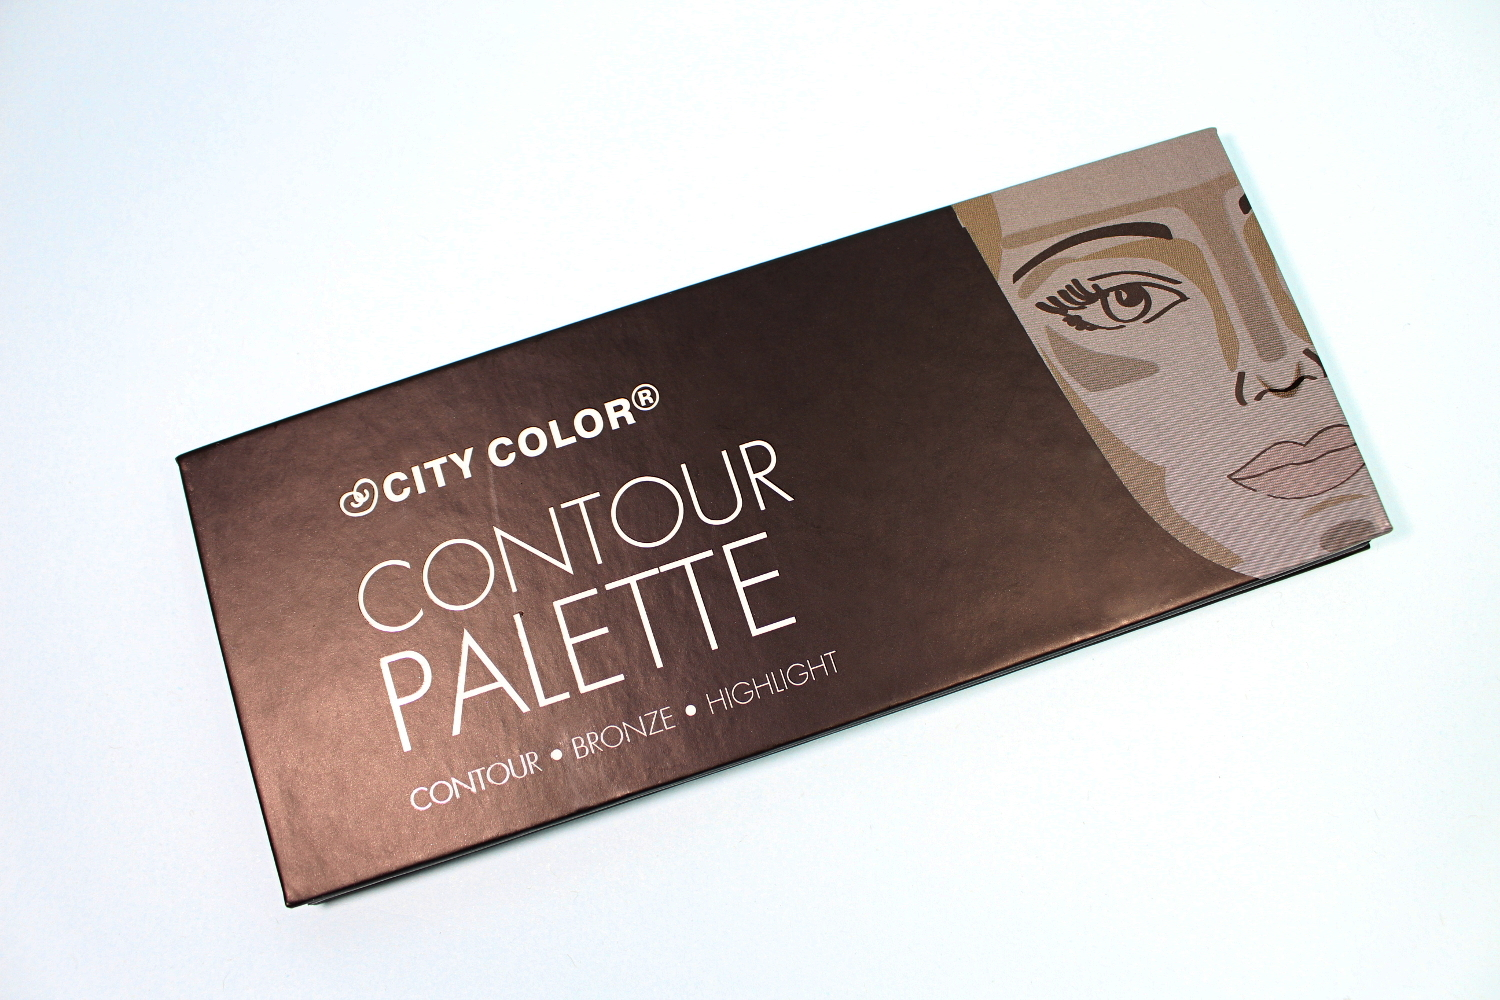 City Color Contour Palette liz breygel makeup cosmetics review before after demo test drive affordable budget friendly brand